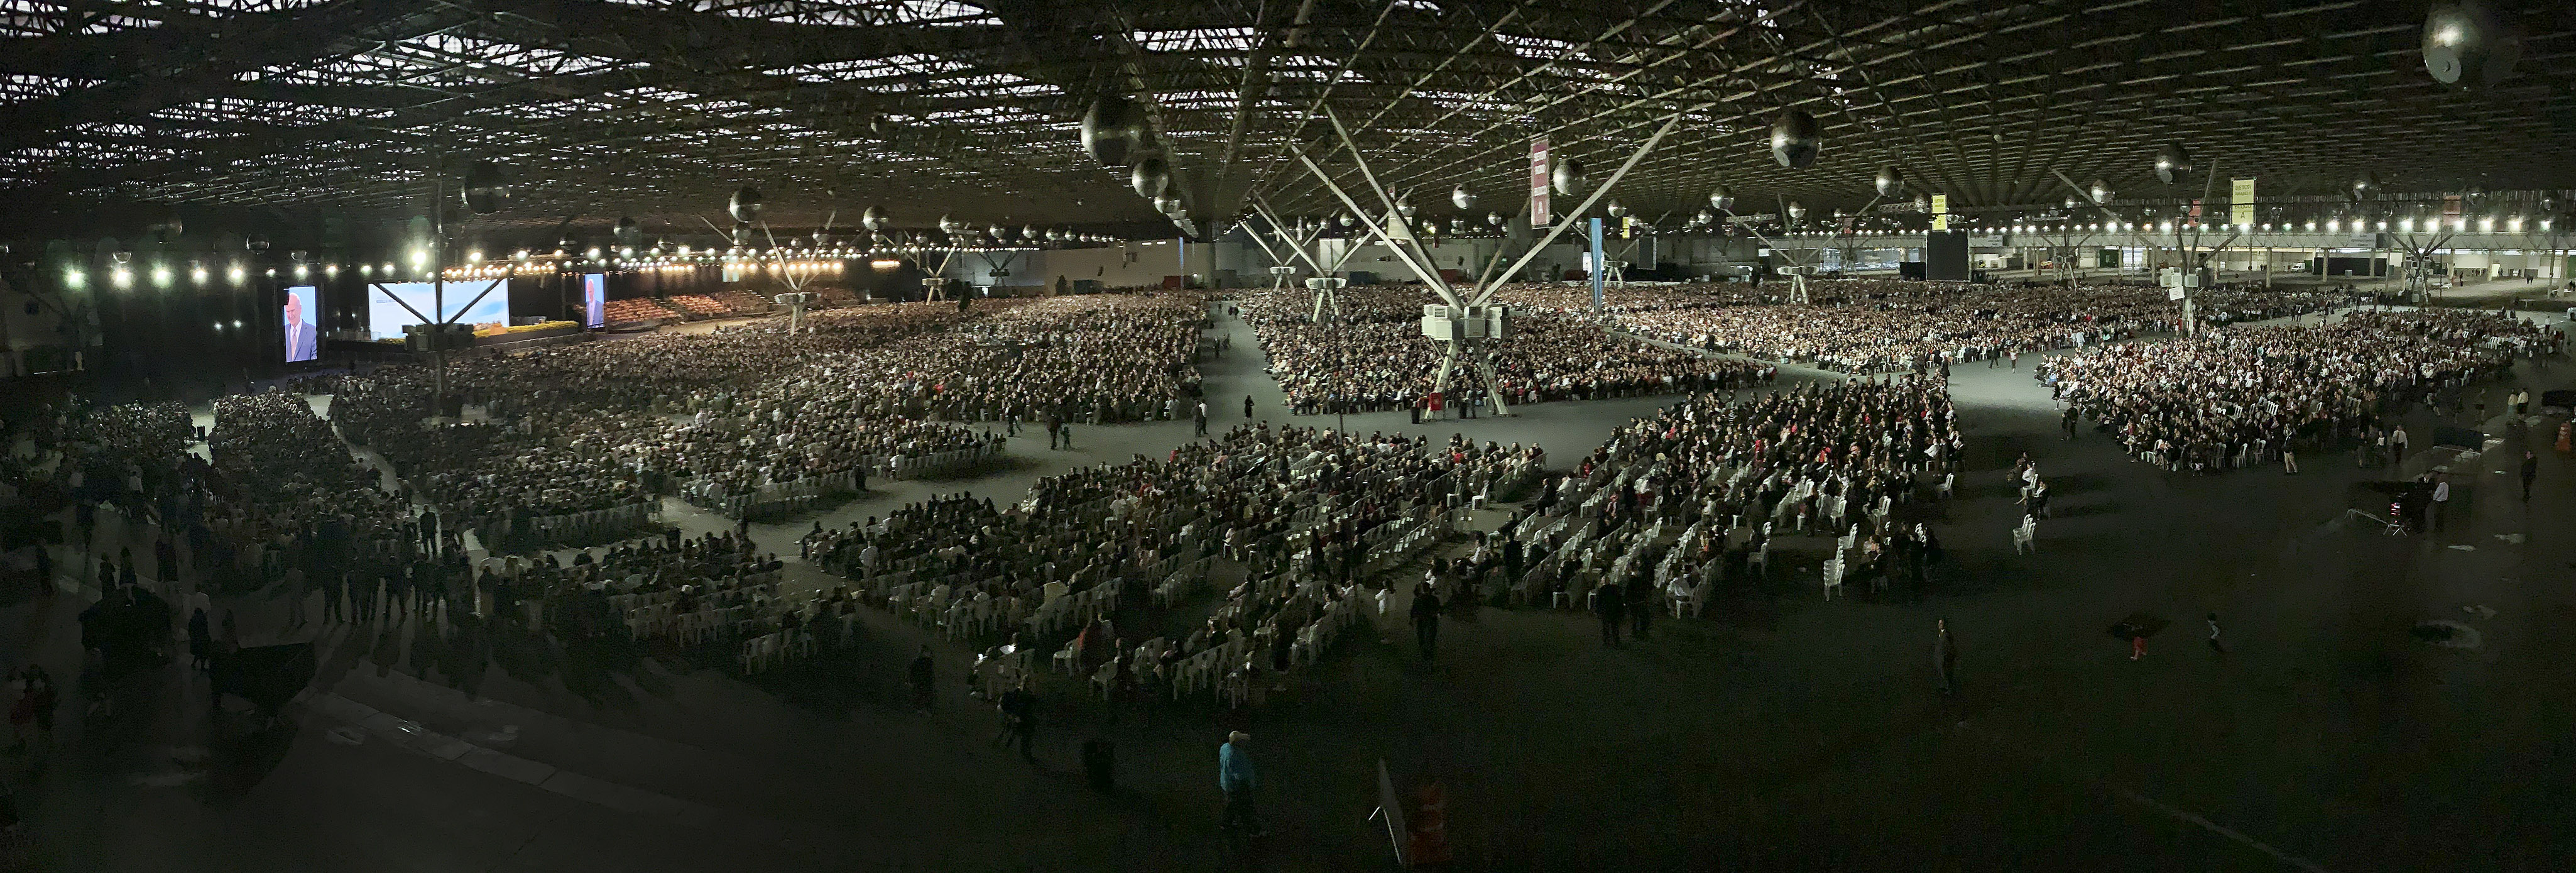 President Russell M. Nelson of The Church of Jesus Christ of Latter-day Saints speaks to 37,000 attendees during a devotional in Sao Paulo, Brazil, on Sunday, Sept. 1, 2019.